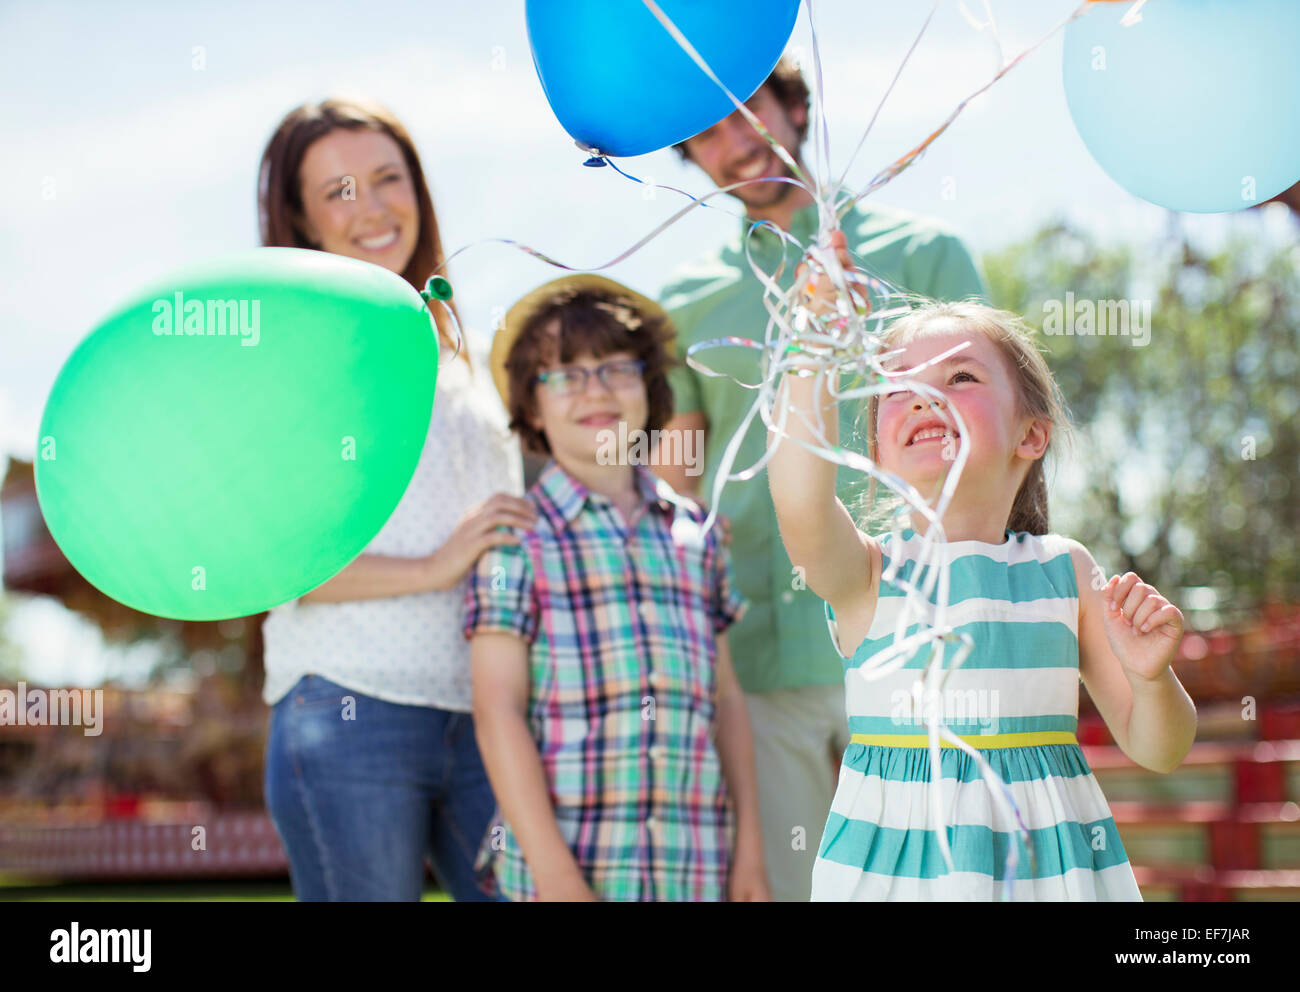 Young girl holding bunch of balloons, family standing behind her - Stock Image